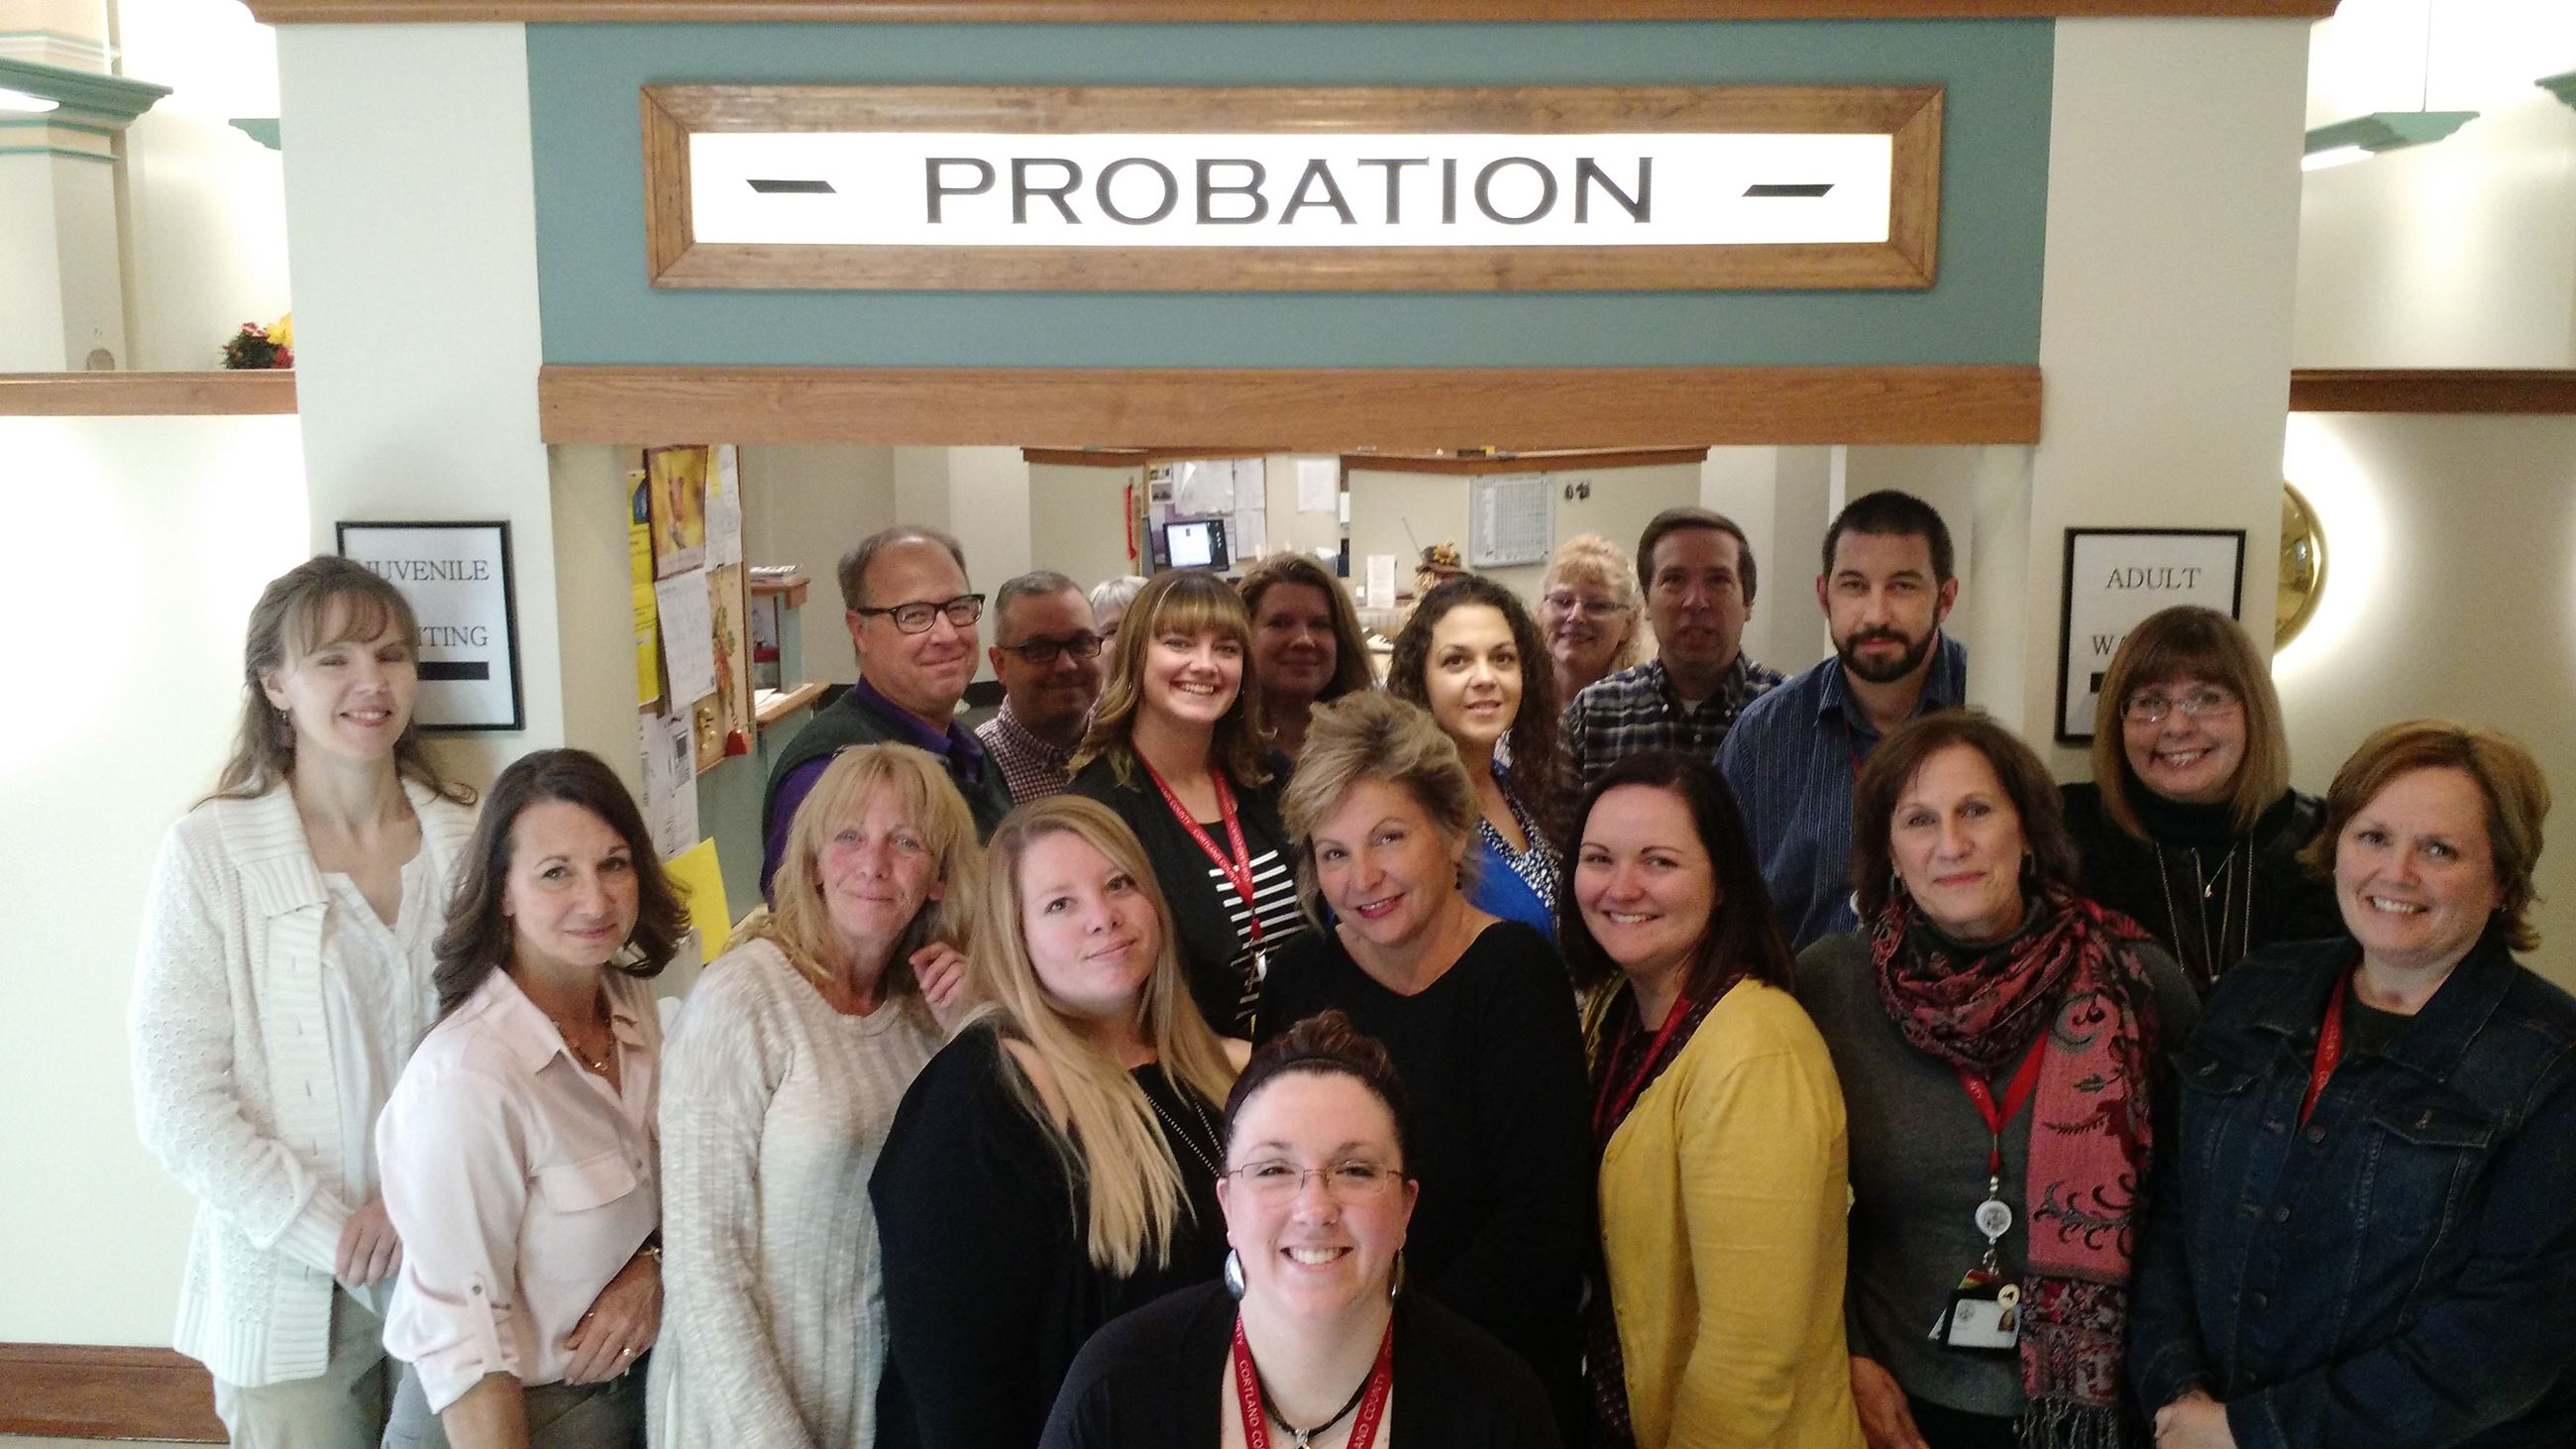 Probation Staff Picture (some)